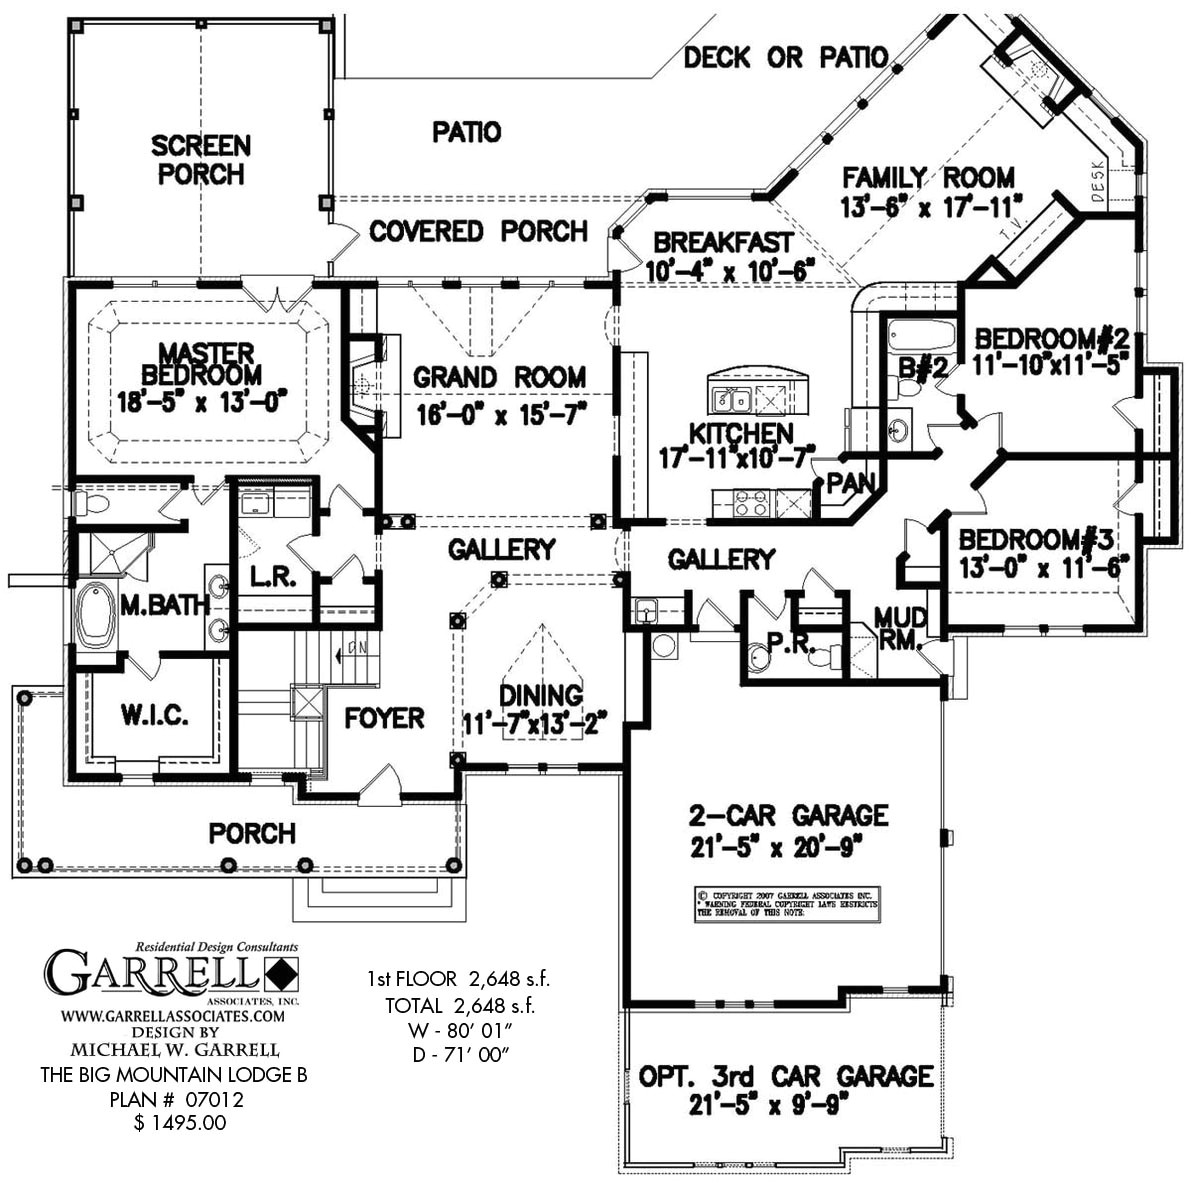 Huge Ranch House Plans Big Mountain Lodge B House Plan House Plans by Garrell